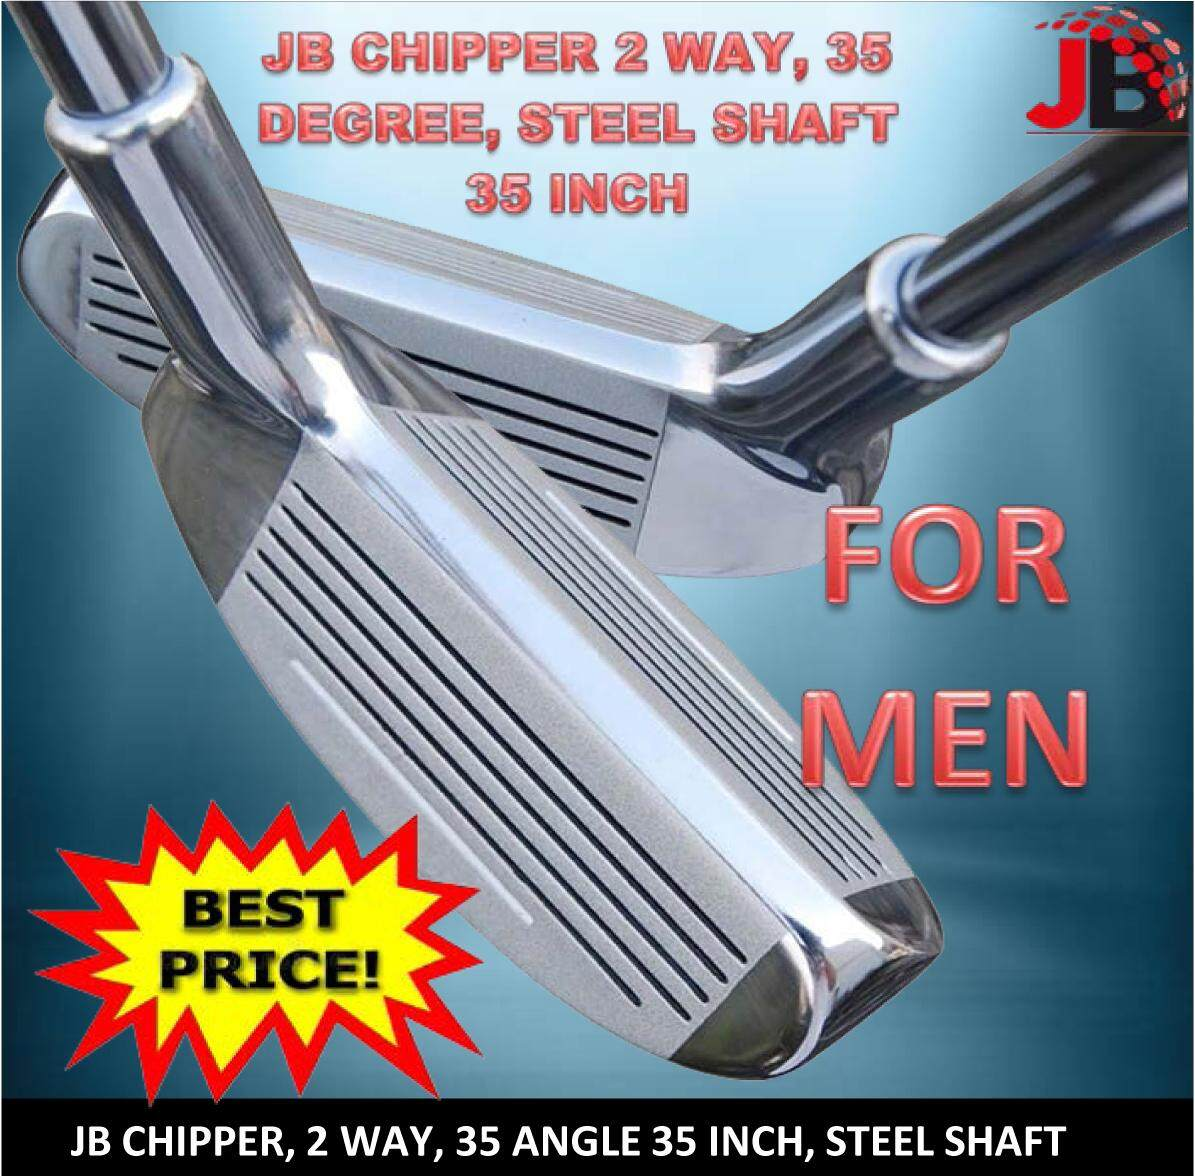 JB Chipper Two Ways (Left-Right) Angle 35 Degree (35 Inch) for Man